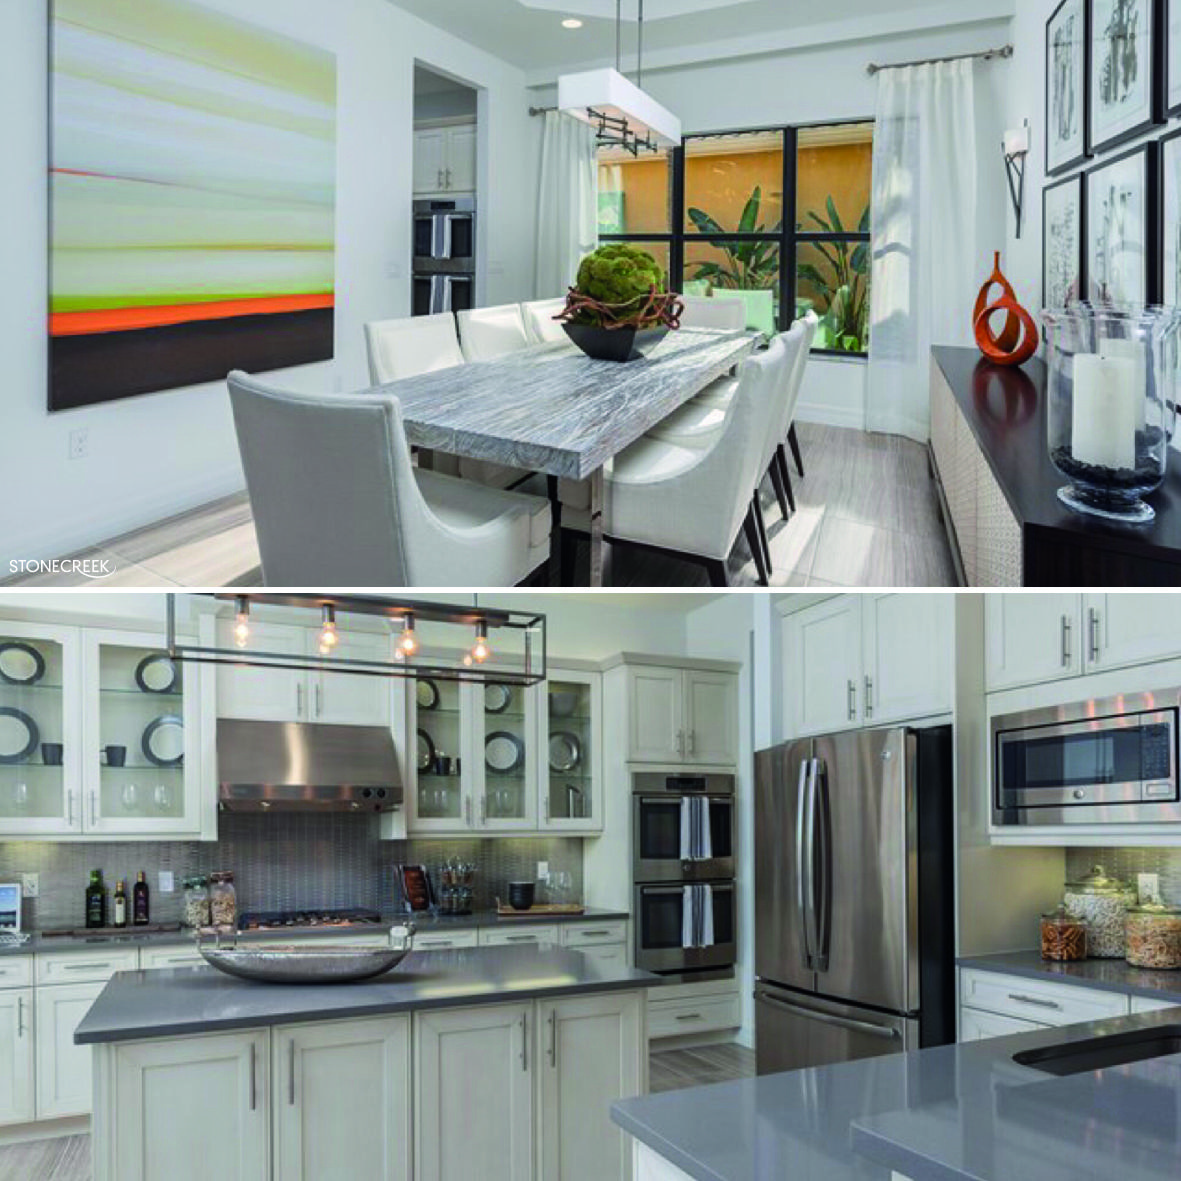 Kitchen Cabinets Naples Florida: You Deserve To Live In Style! Click The Link In Our Bio